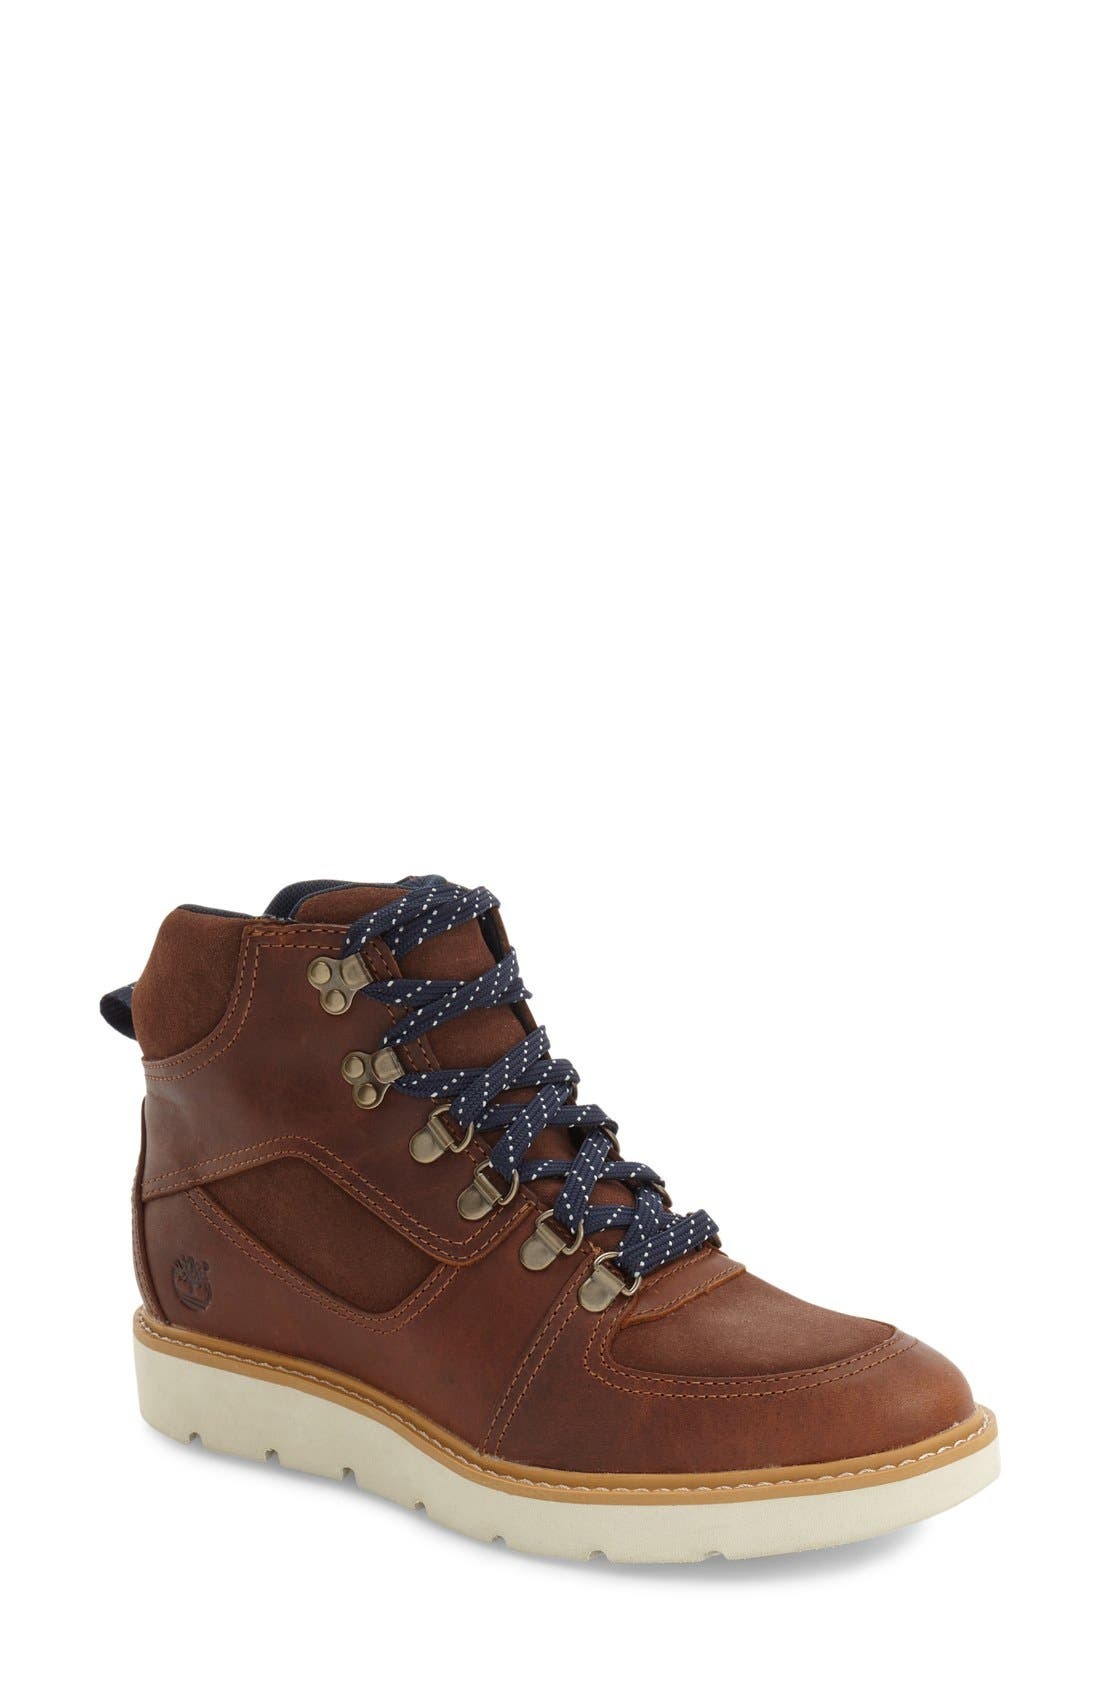 'Kenniston' Lace-Up Boot,                         Main,                         color, Tobacco Leather